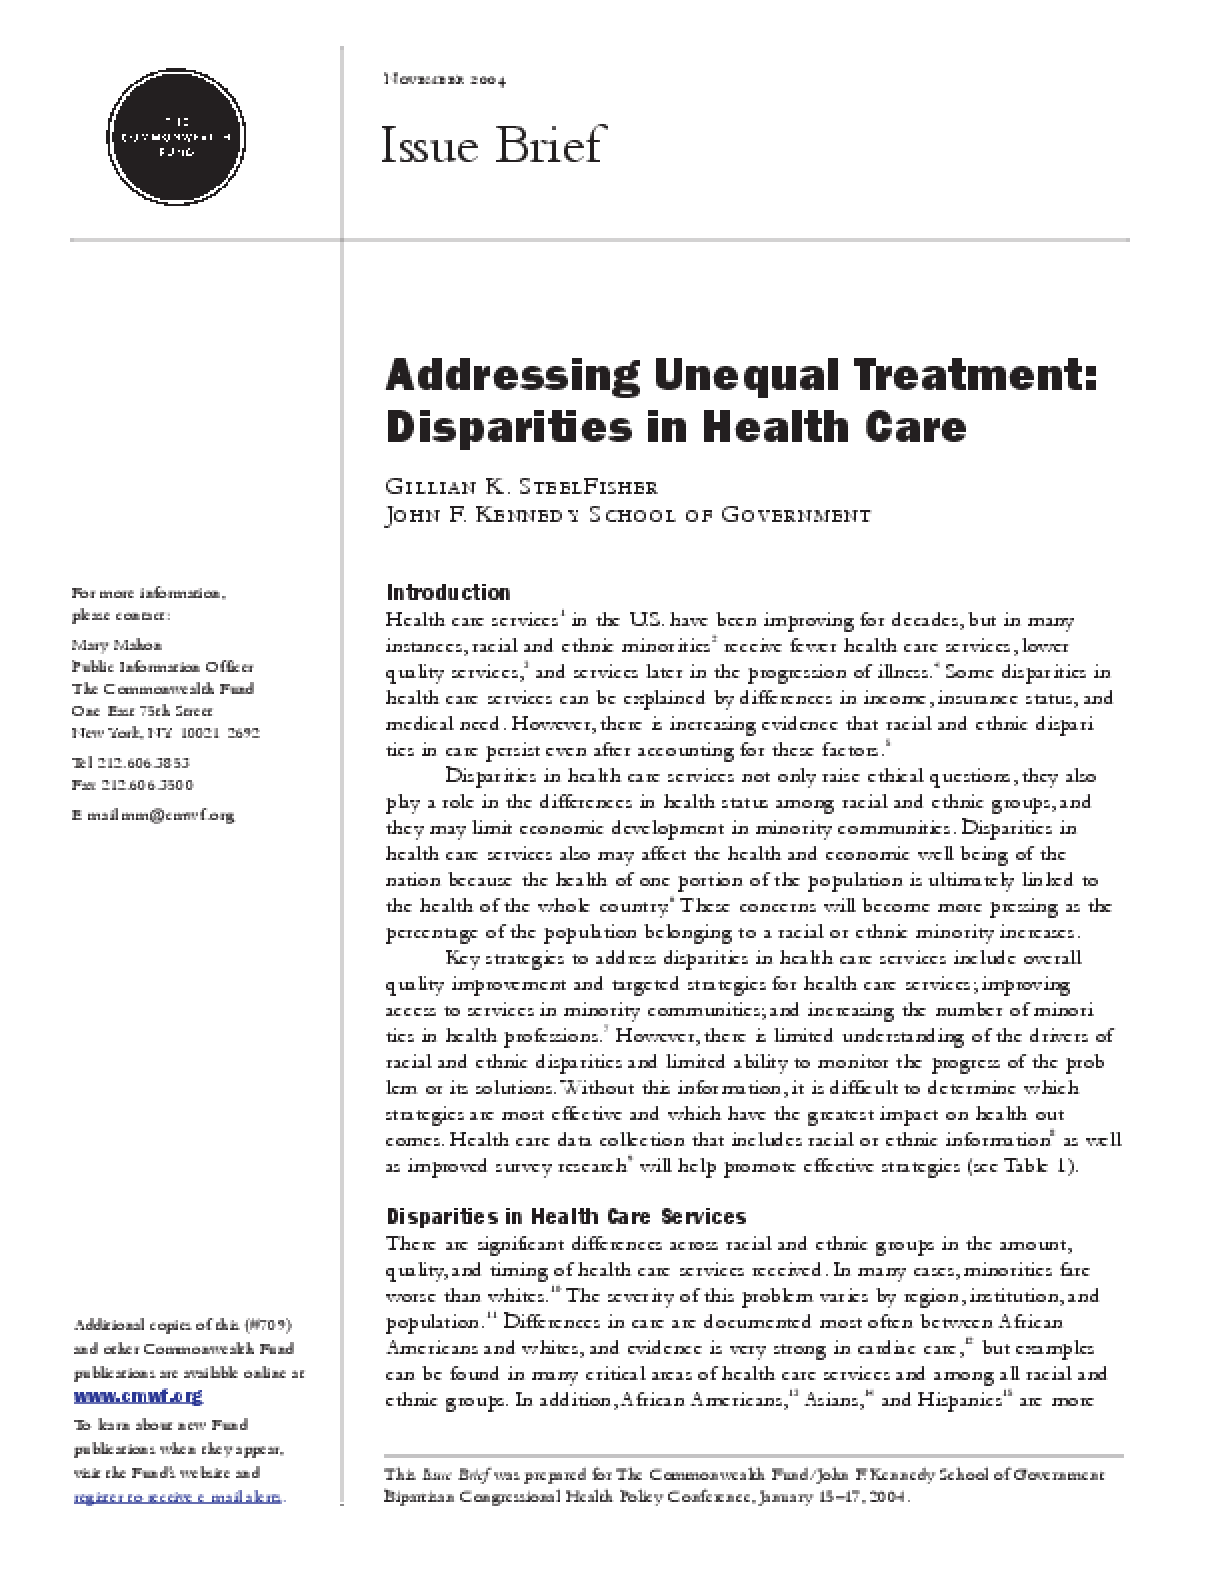 Addressing Unequal Treatment: Disparities in Health Care